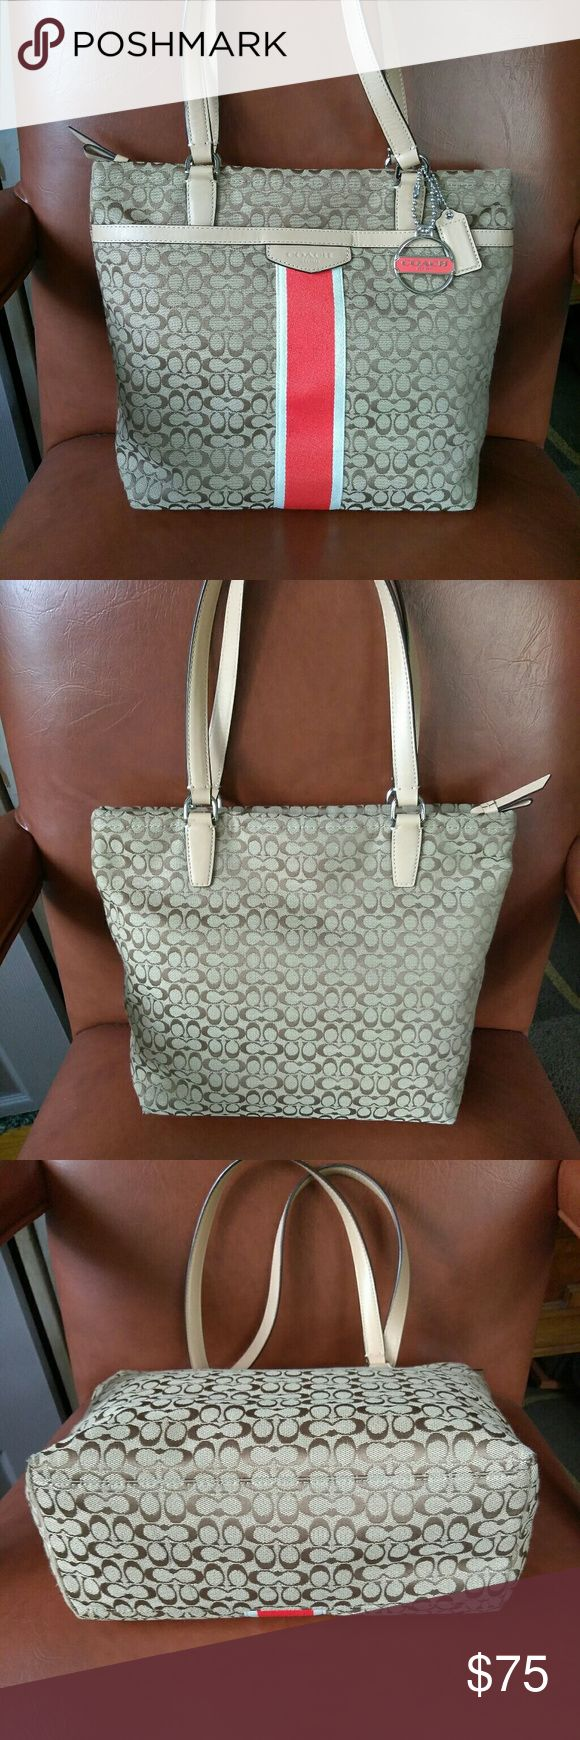 Coach Tote Bag Coach tote bag preloved in good condition no stains no tears has a little pen mark on the inside. Coach Bags Totes